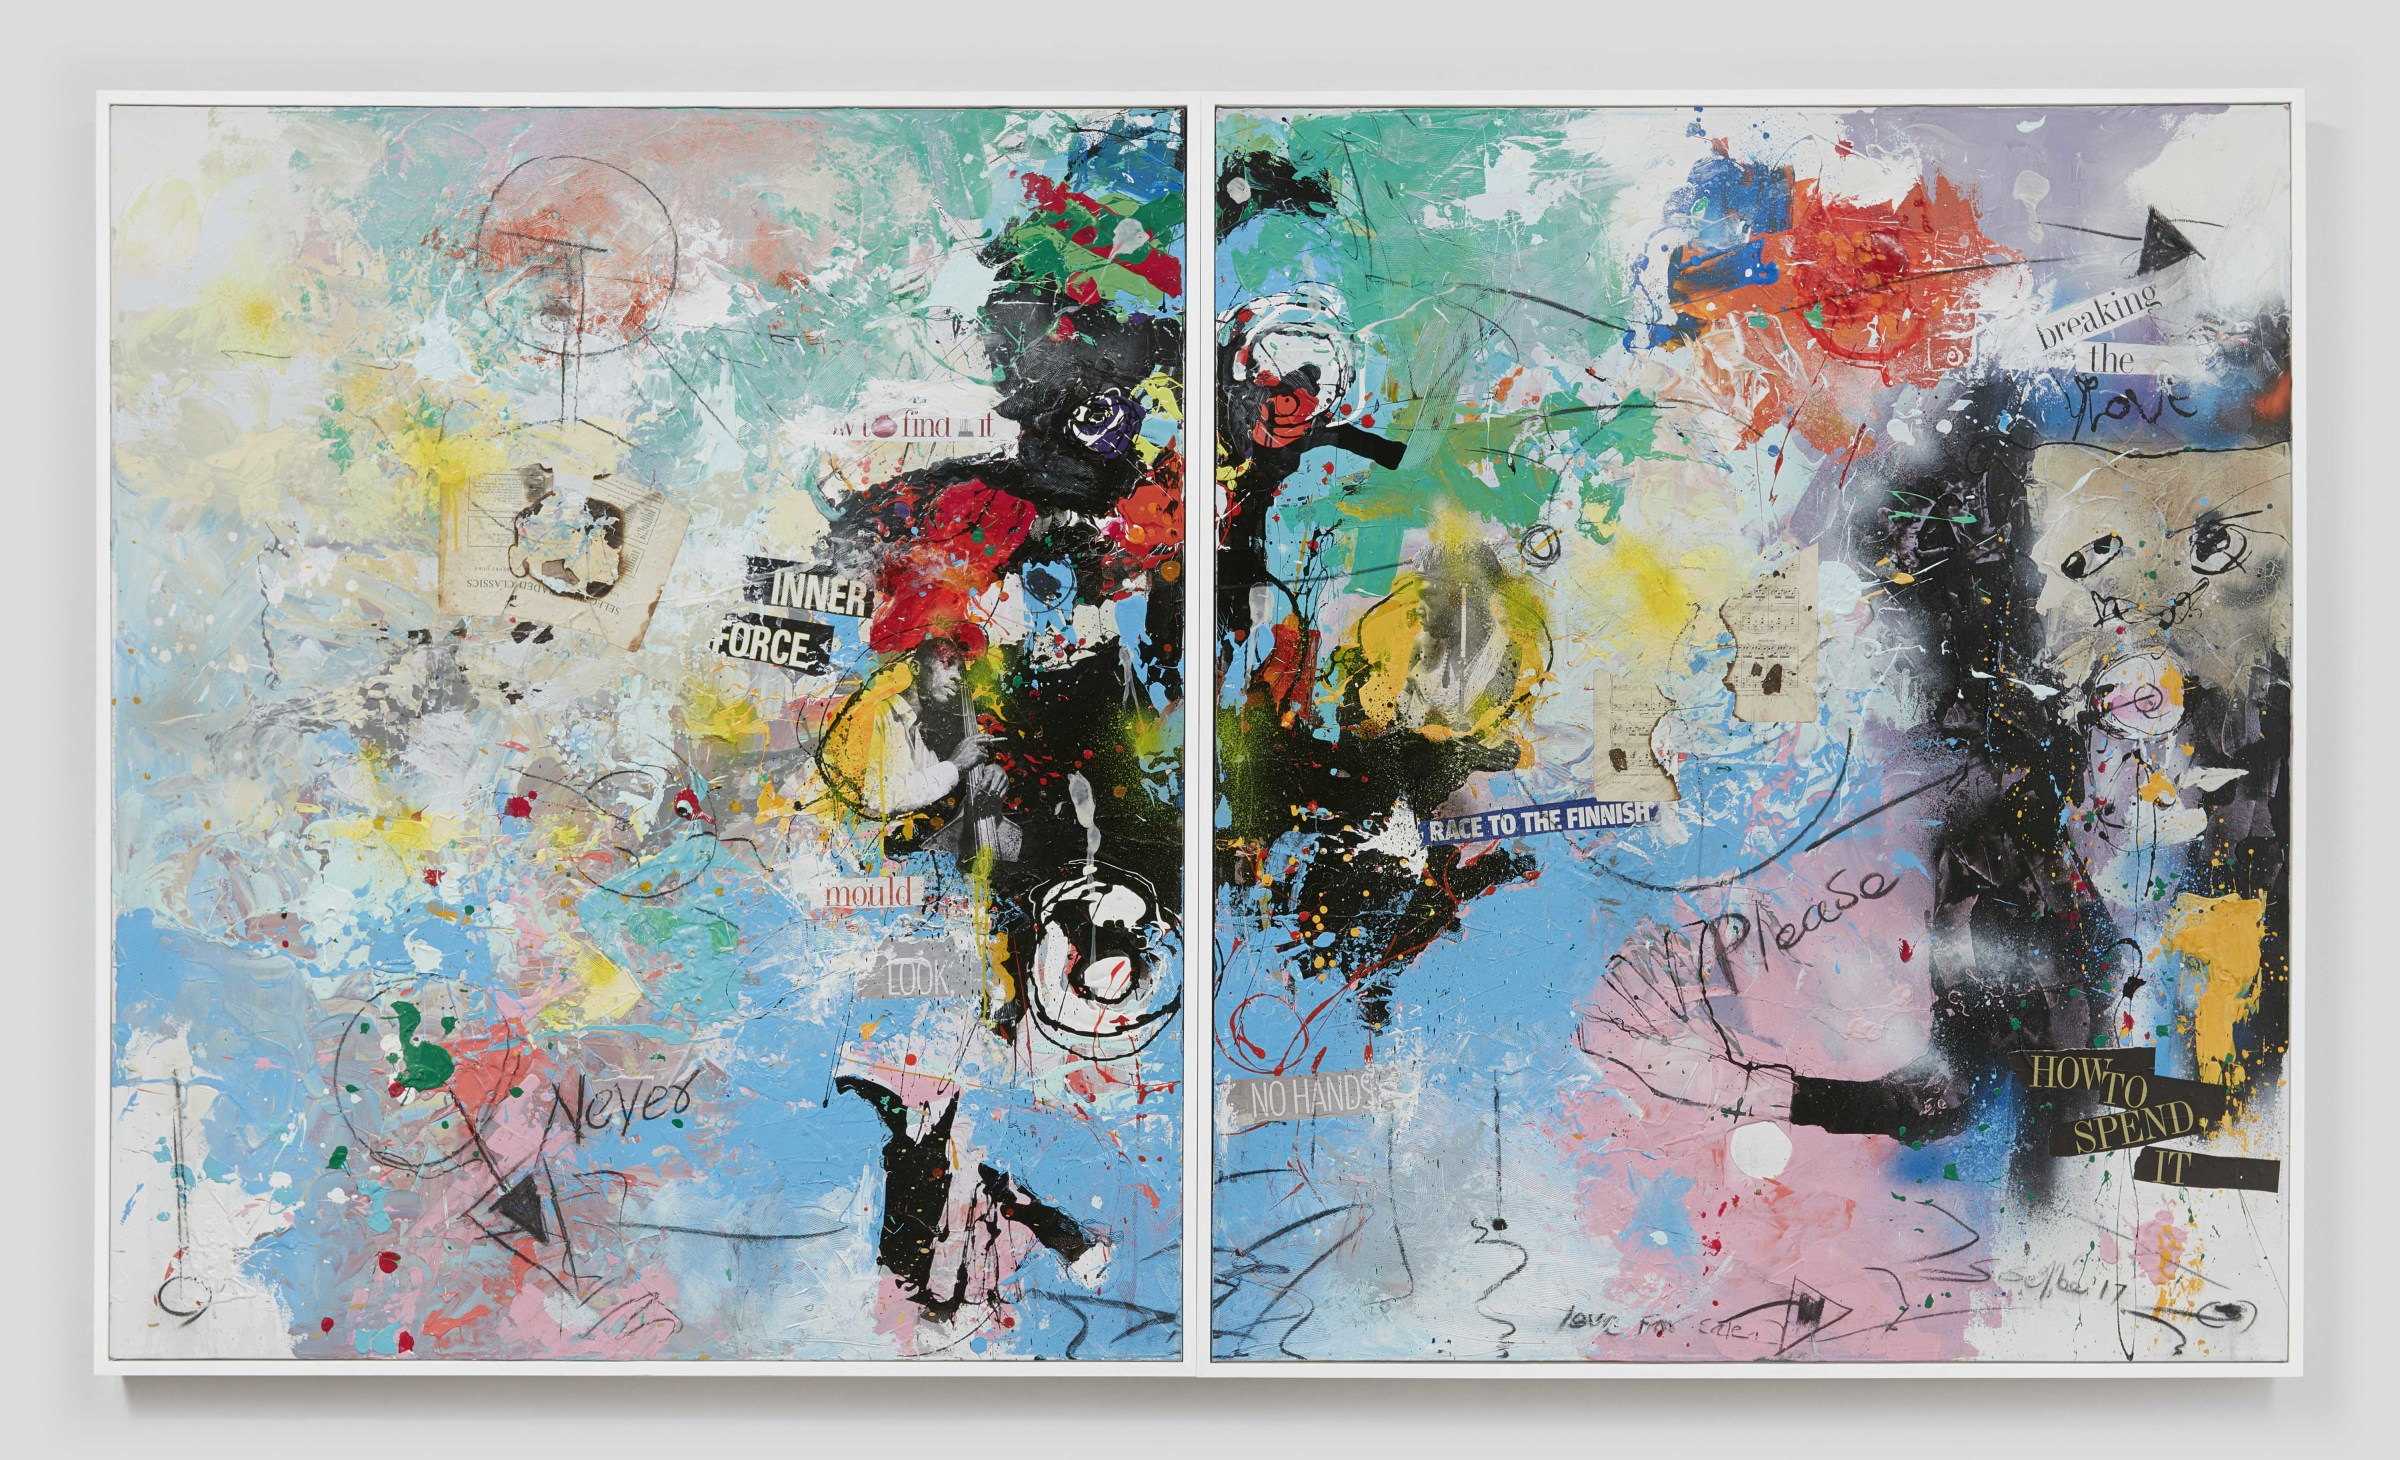 "<span class=""link fancybox-details-link""><a href=""/artists/34/series/diptychs/4262-daniel-stompie-selibe-please-2017/"">View Detail Page</a></span><div class=""artist""><strong>Daniel Stompie Selibe</strong></div> 1974- <div class=""title""><em>""Please"" </em>, 2017</div> <div class=""medium"">Mixed media on canvas</div> <div class=""dimensions"">Artwork  140x120cm Each<br />                140x240cm Diptych<br /> Framed:  143x123cm  Each<br />                 143x248cm  Diptych</div><div class=""copyright_line"">Copyright The Artist</div>"